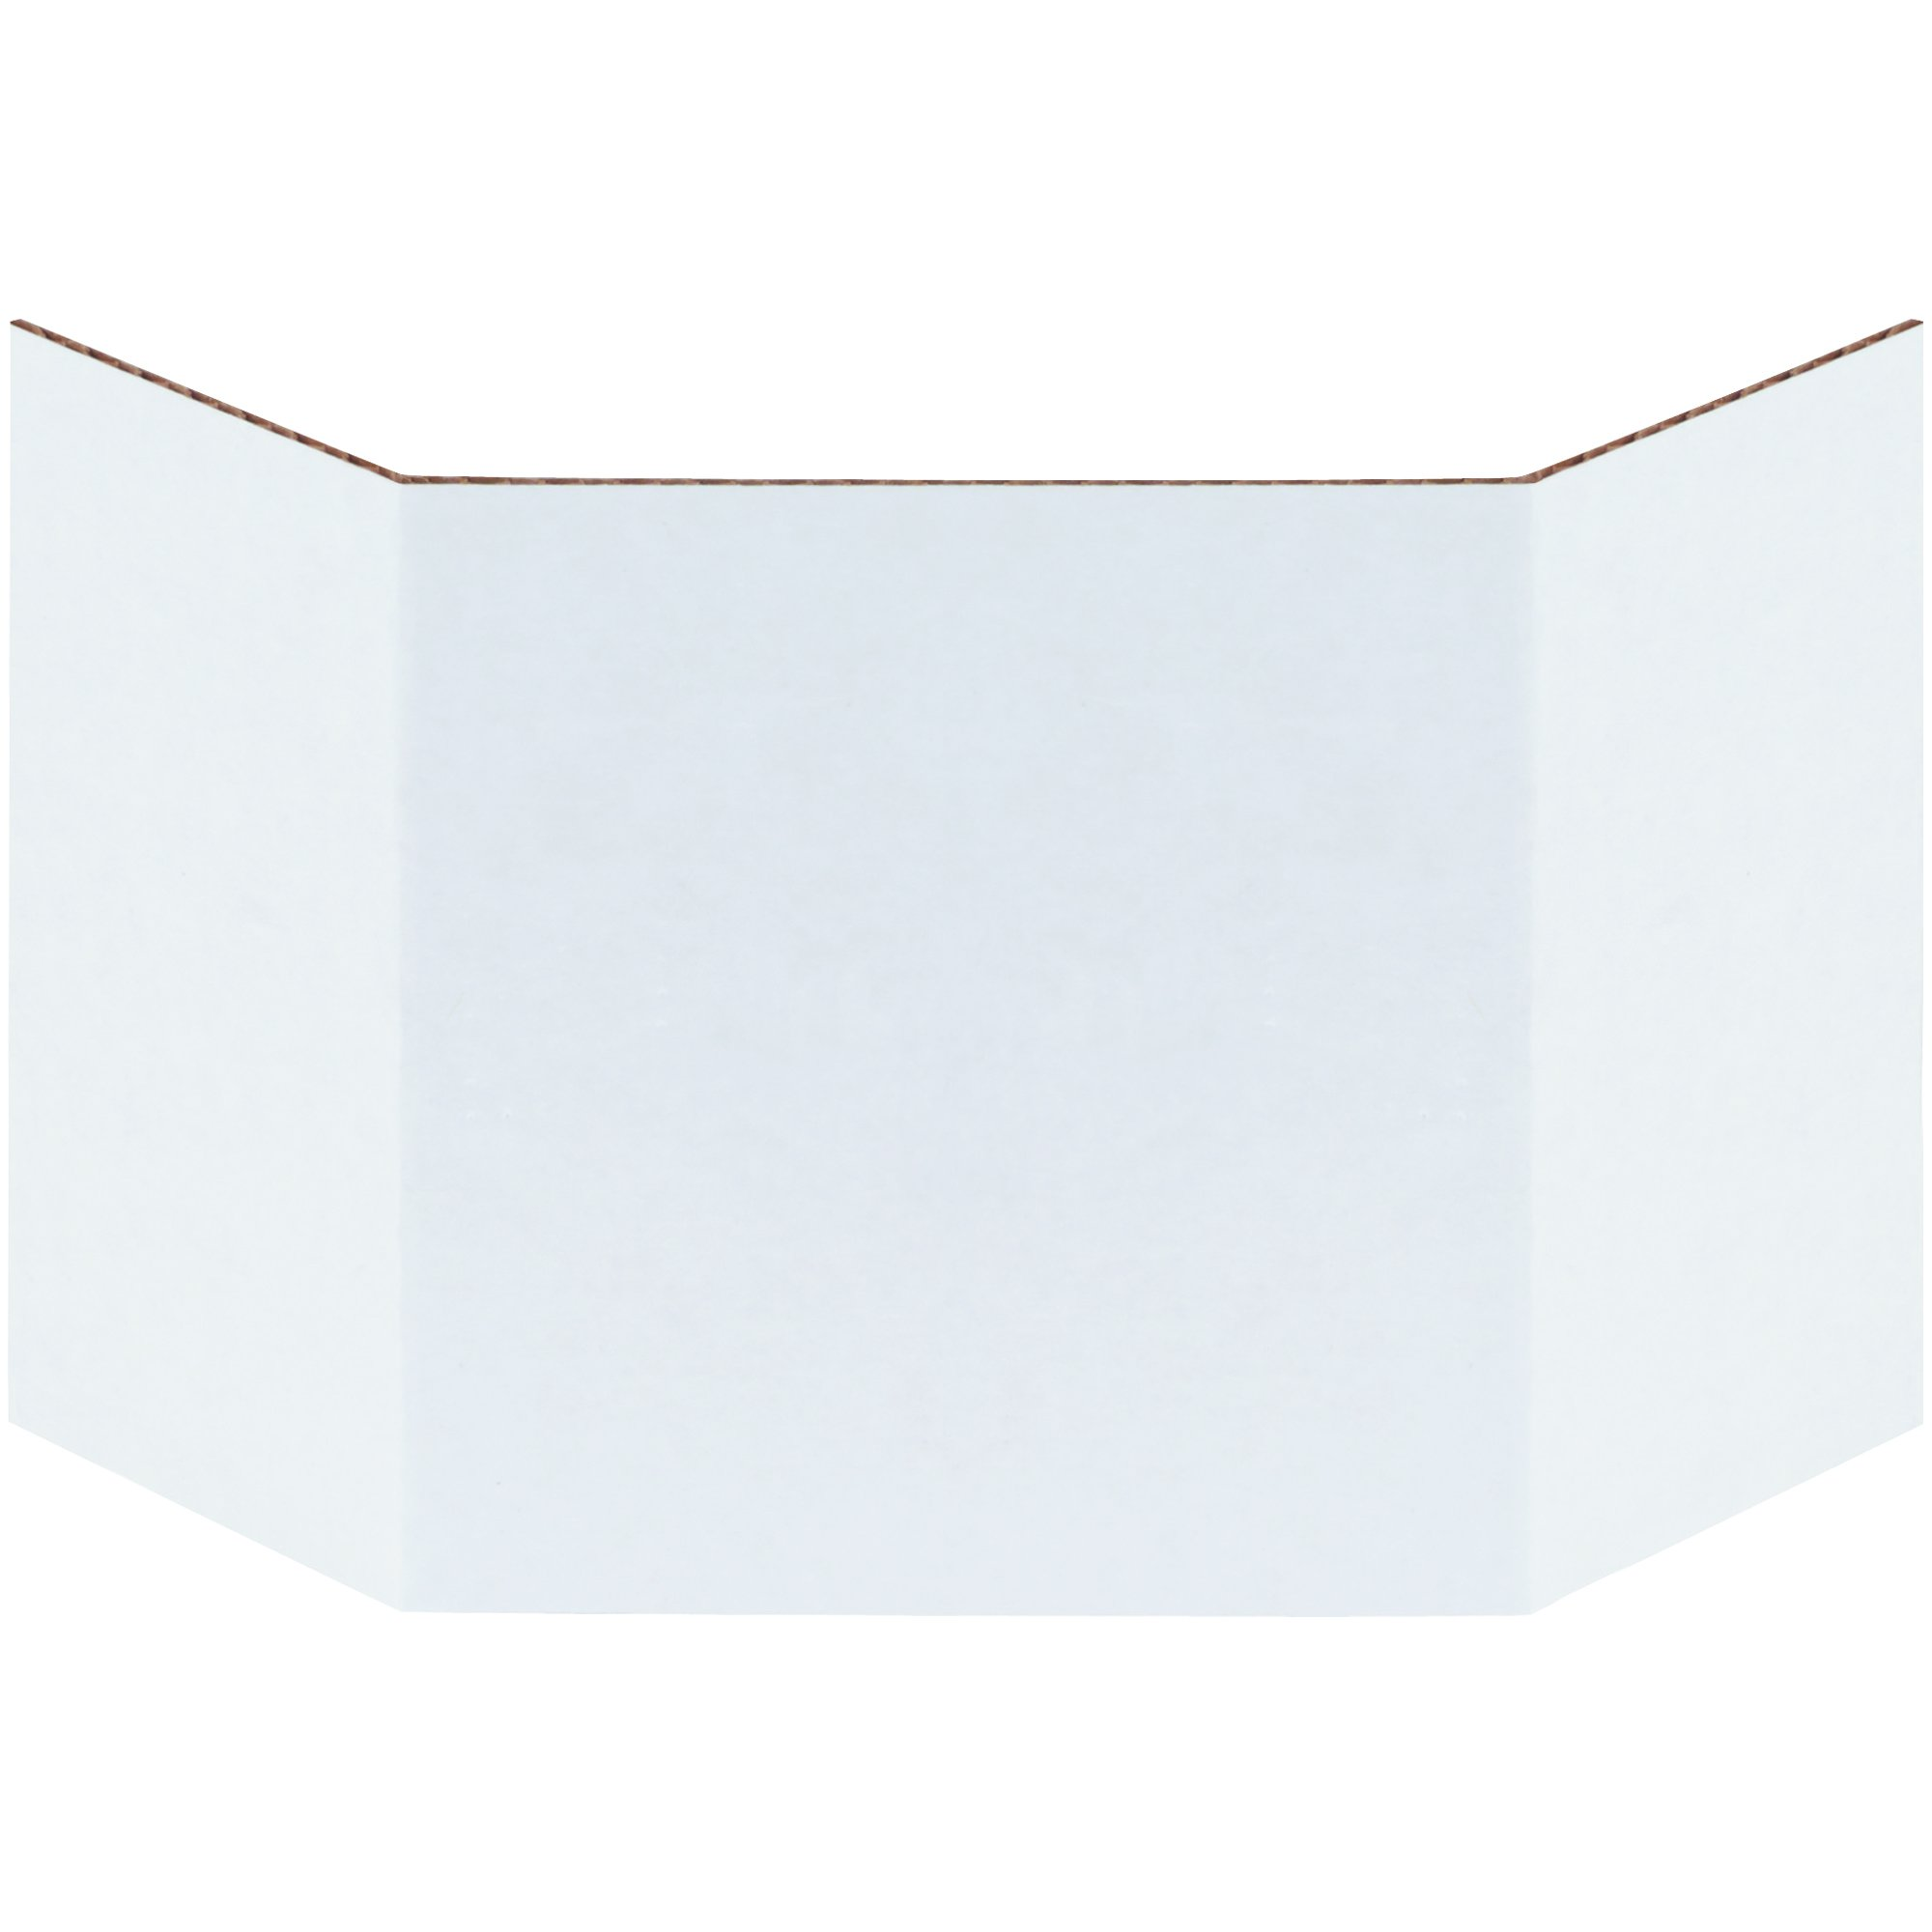 BOX USA BBIND4 Corrugated Bin Dividers, 4'', Oyster White (Pack of 100) by BOX USA